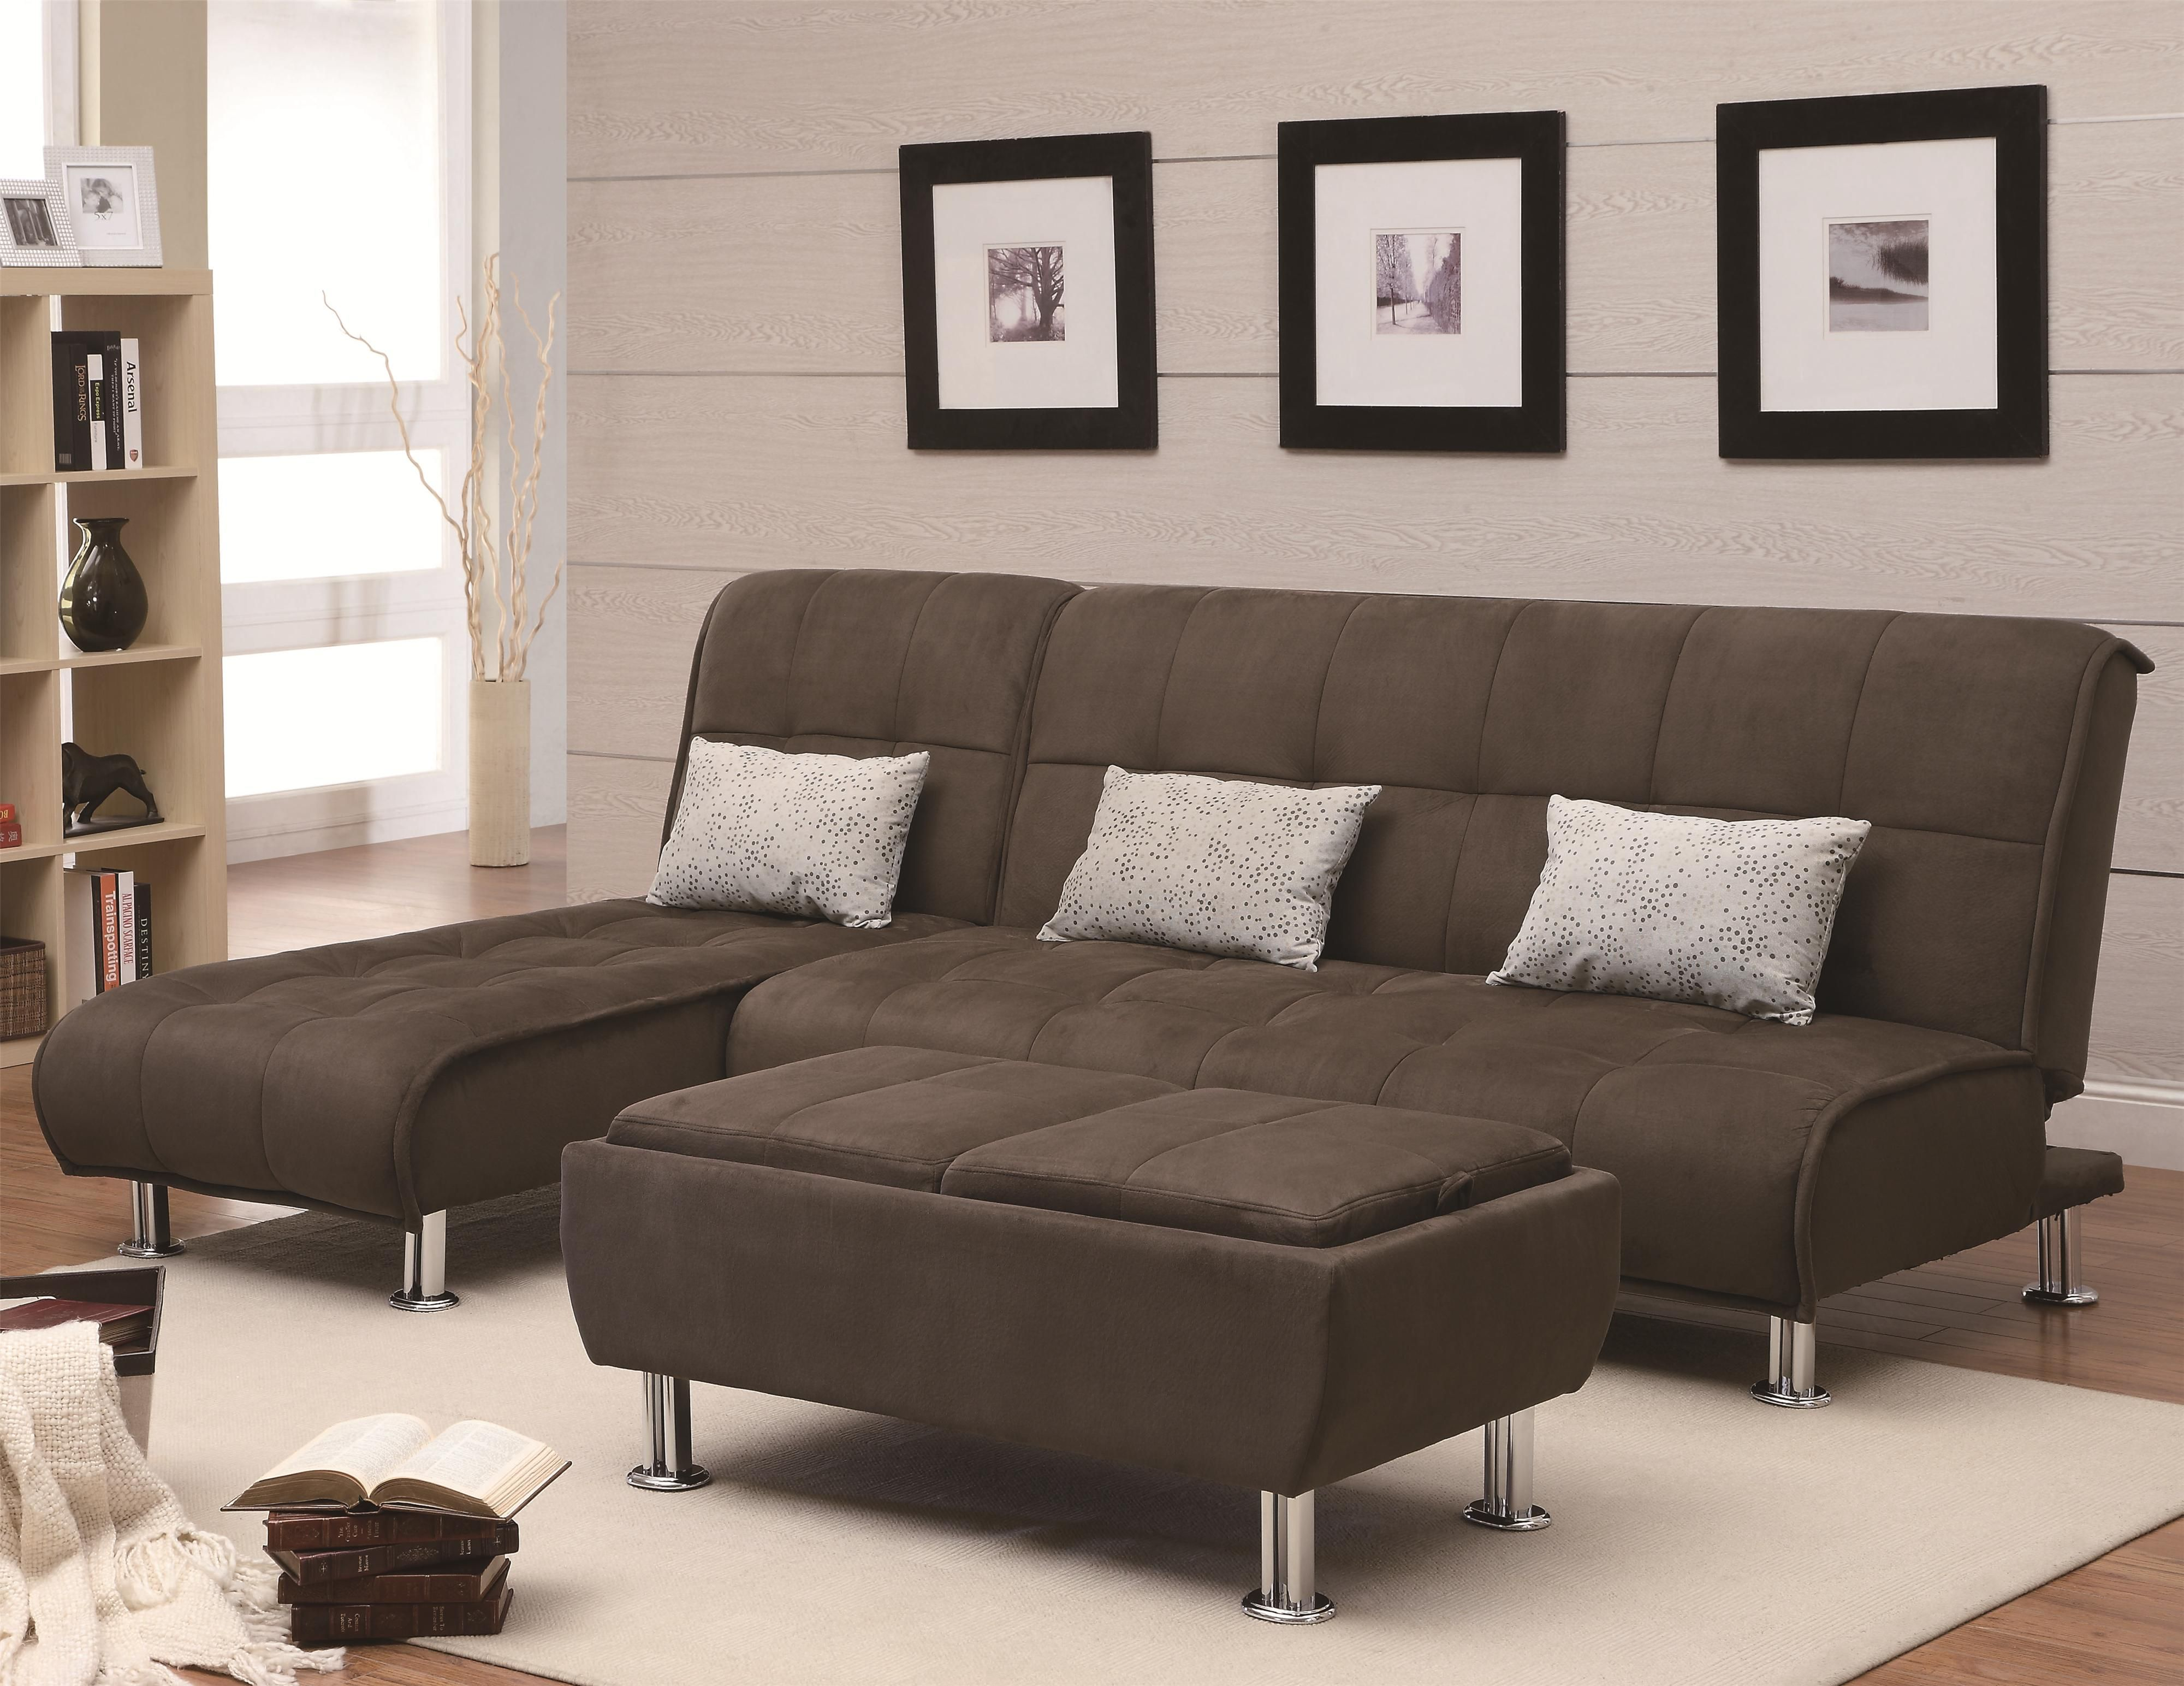 Sofa Beds And Futons Sectional Sofa Sleeper By Coaster Sofa Bed With Chaise Futon Sectional Living Room Sofa